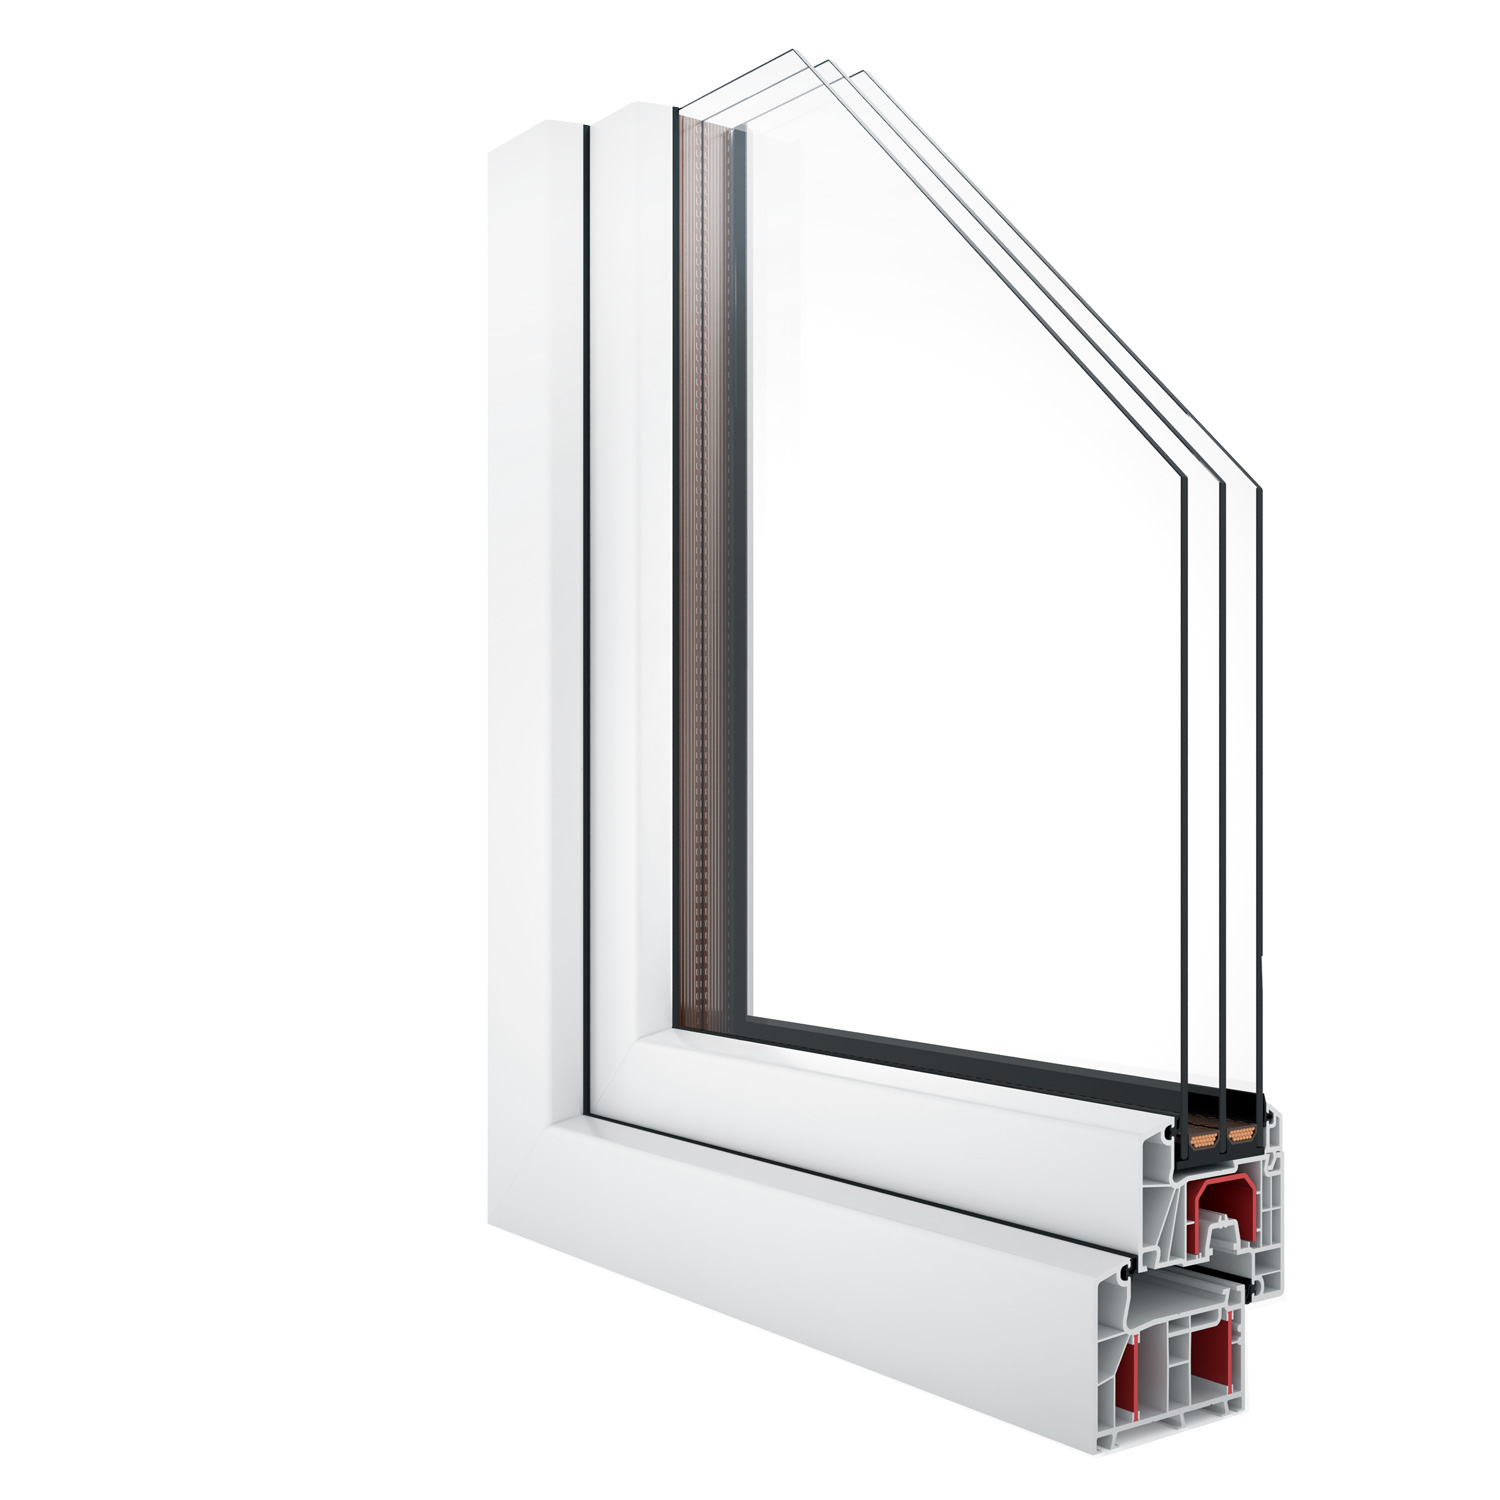 R-7 Zola Thermo uPVC™ window rendering